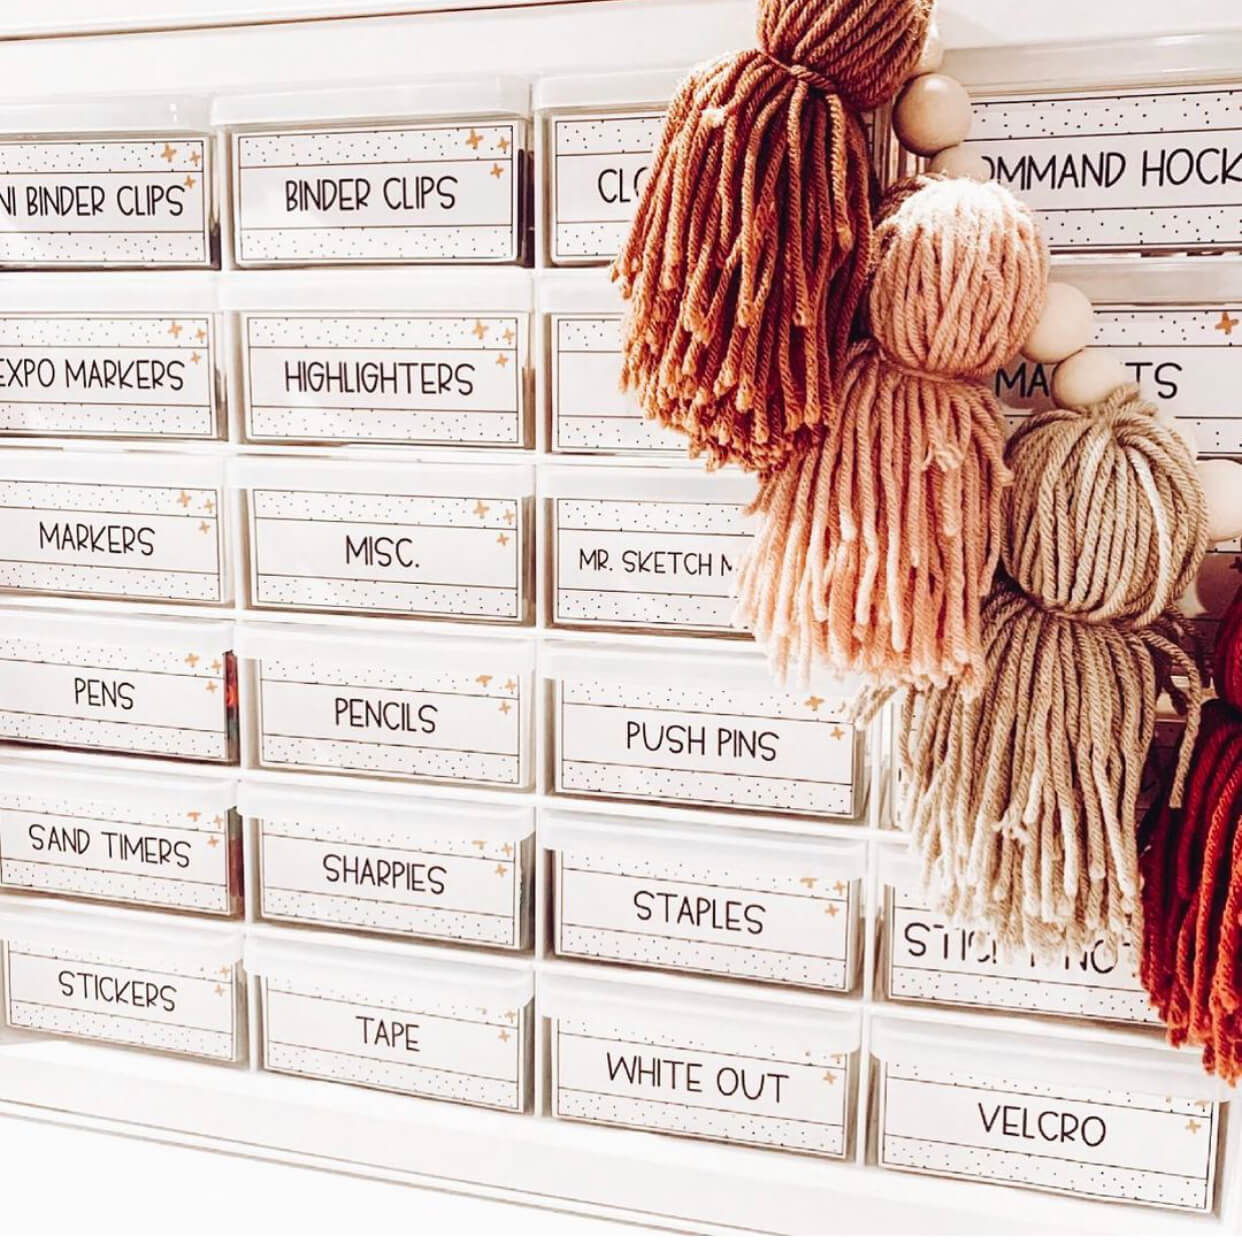 Using a teacher toolbox is one classroom organizaton idea for this upcoming school year.